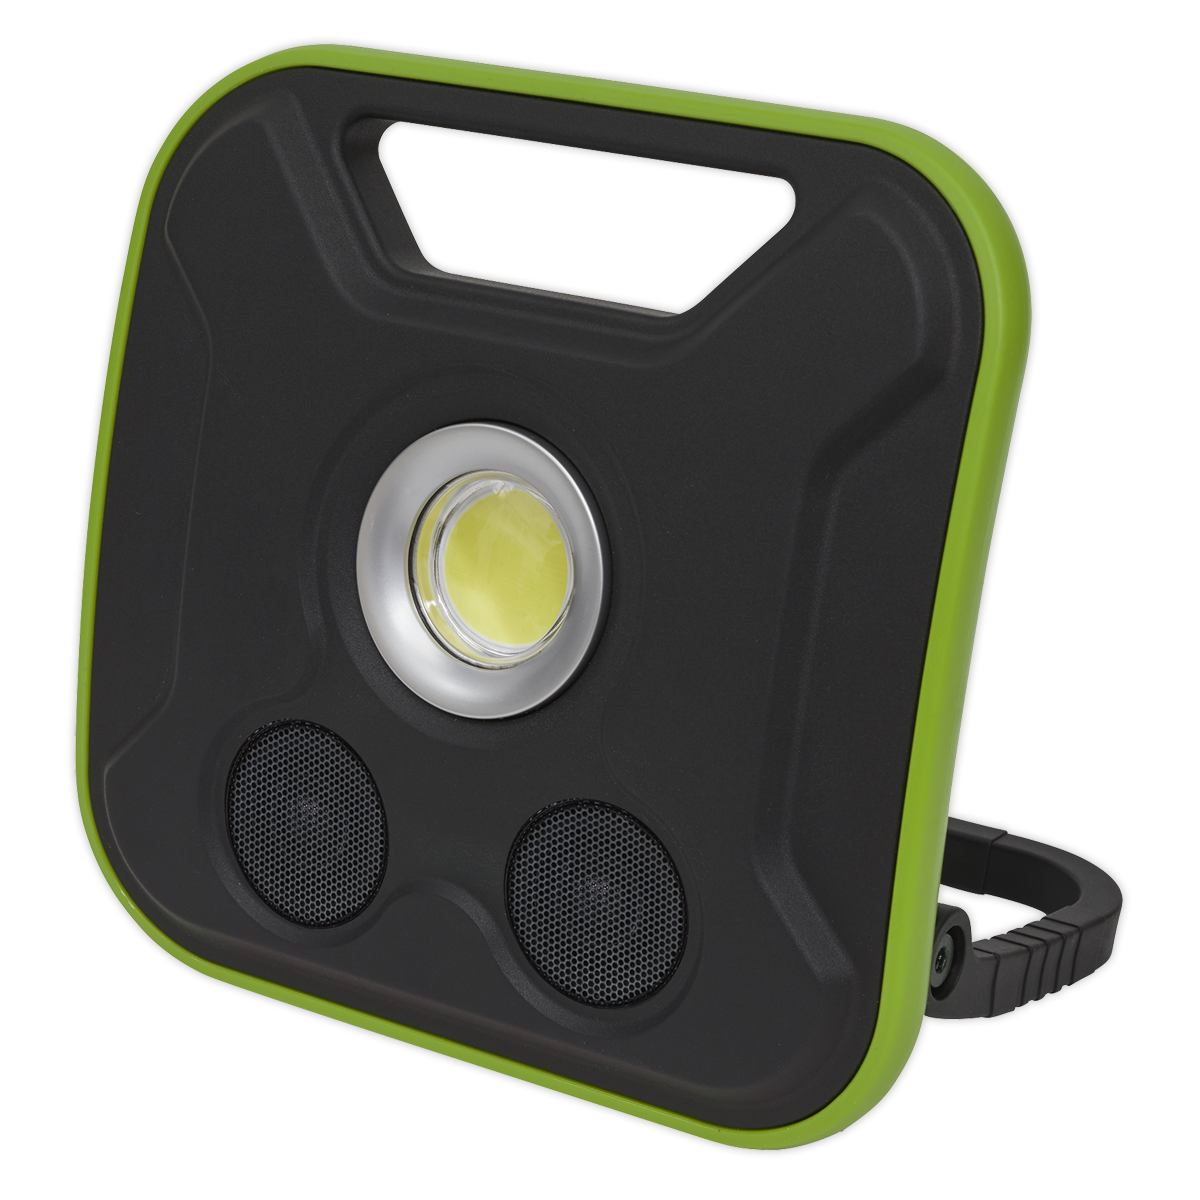 Floodlight/Power Bank with Wireless Speakers 20W COB Rechargeable